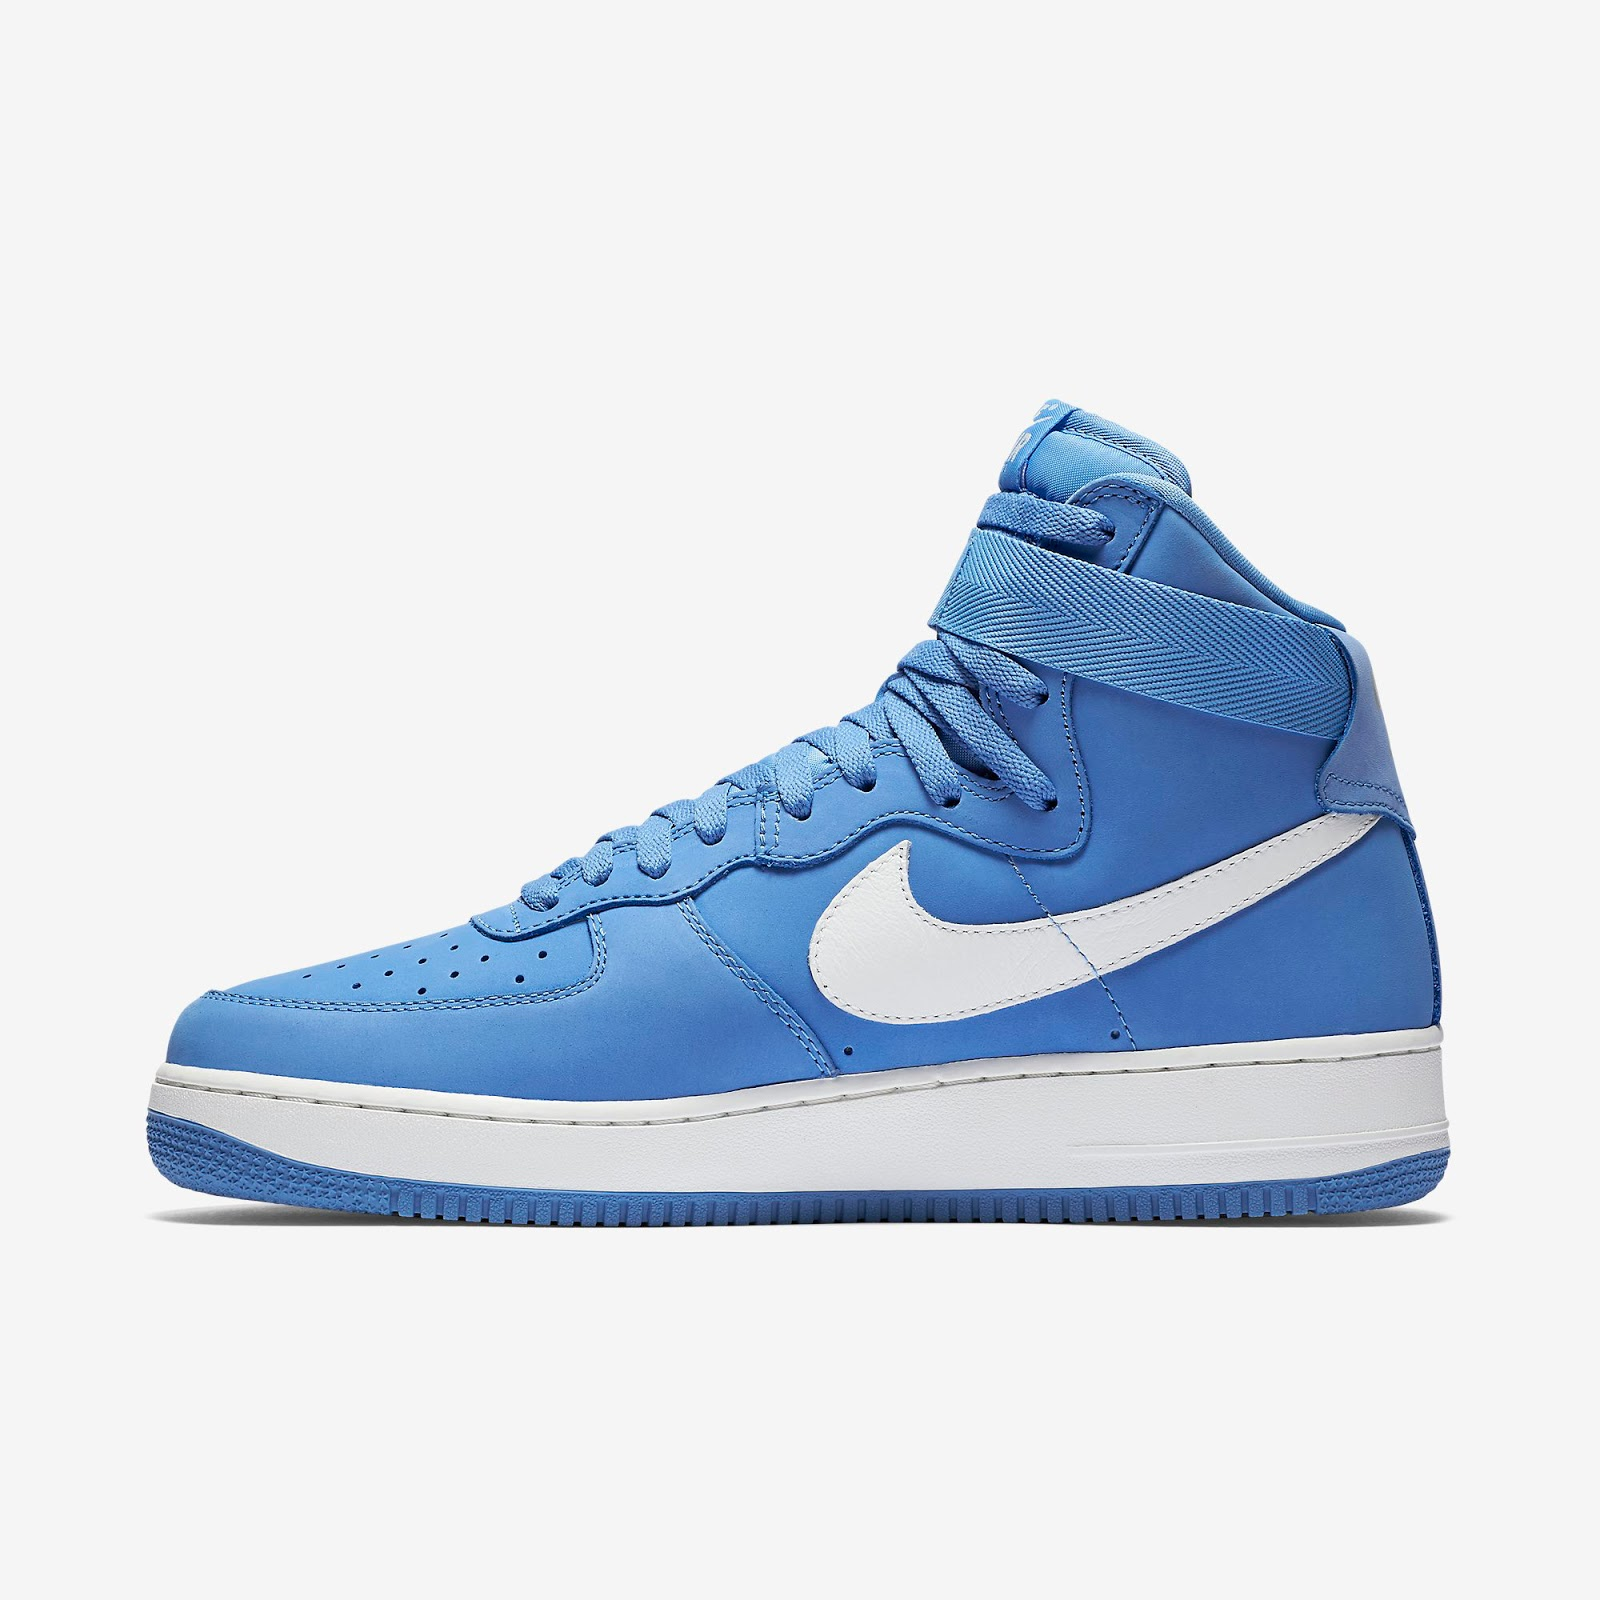 ajordanxi your 1 source for sneaker release dates nike air force 1 high retro qs university. Black Bedroom Furniture Sets. Home Design Ideas